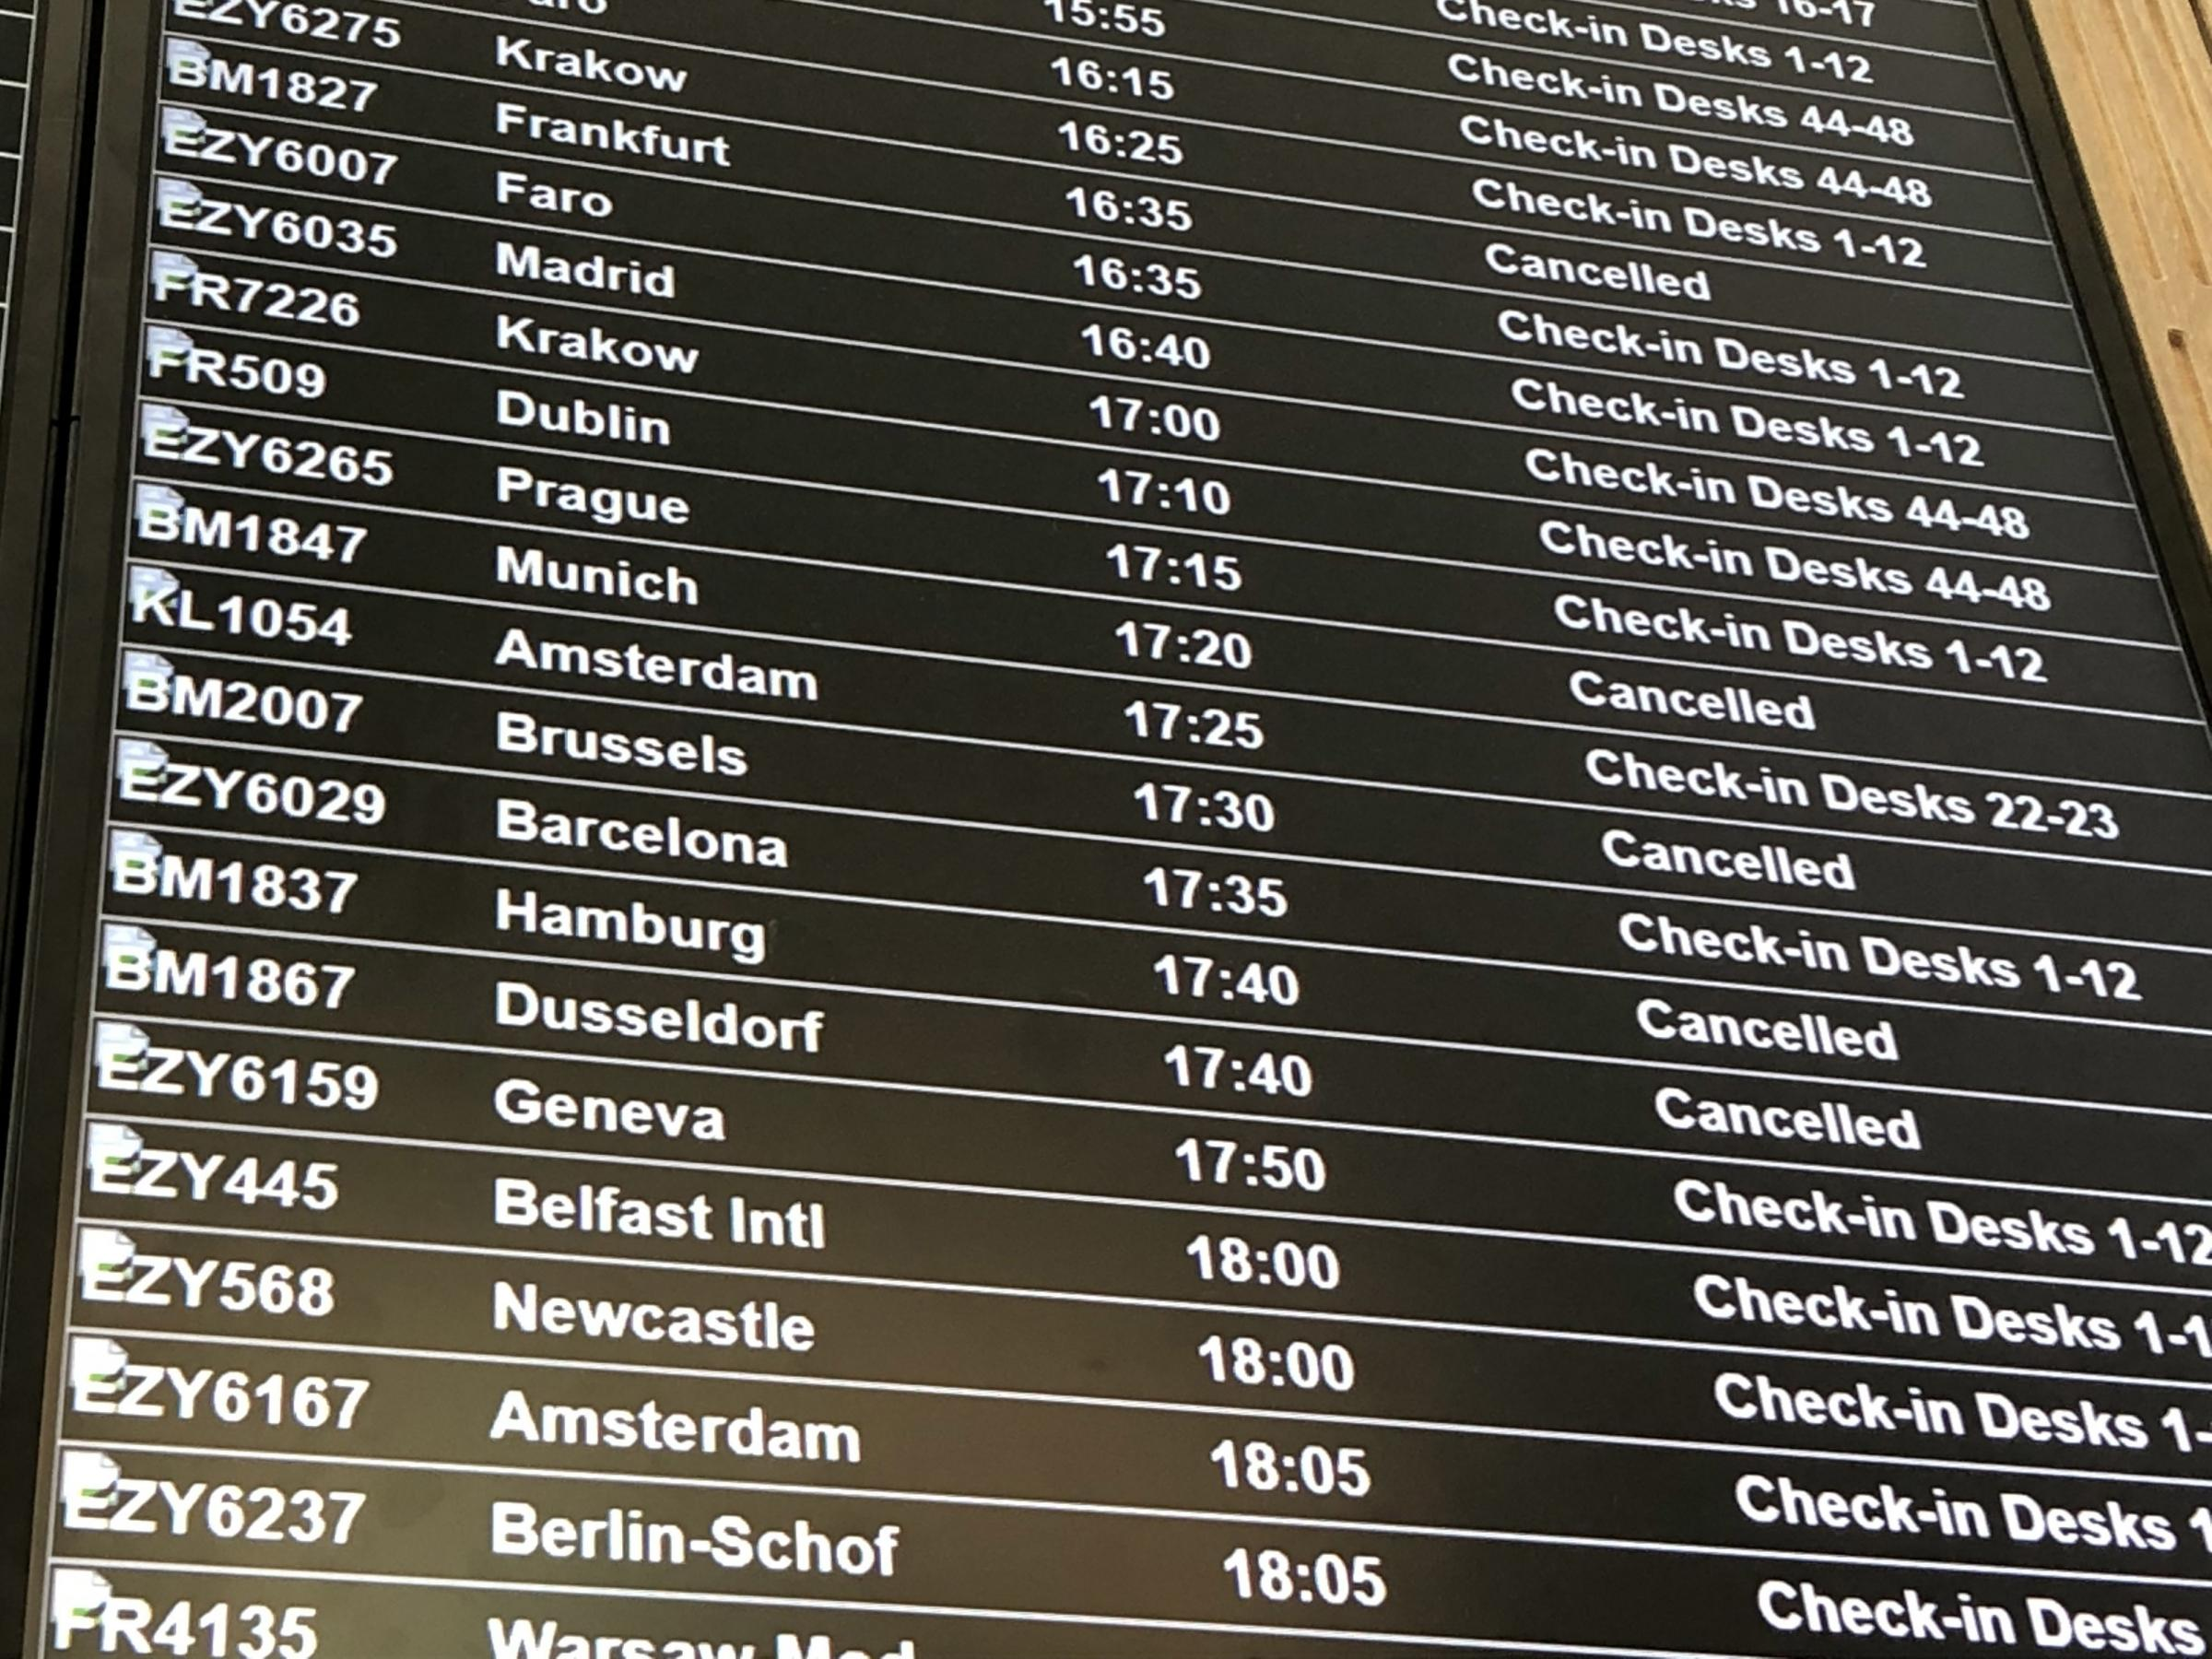 Flybmi flights have been cancelled following the collapse of the airline